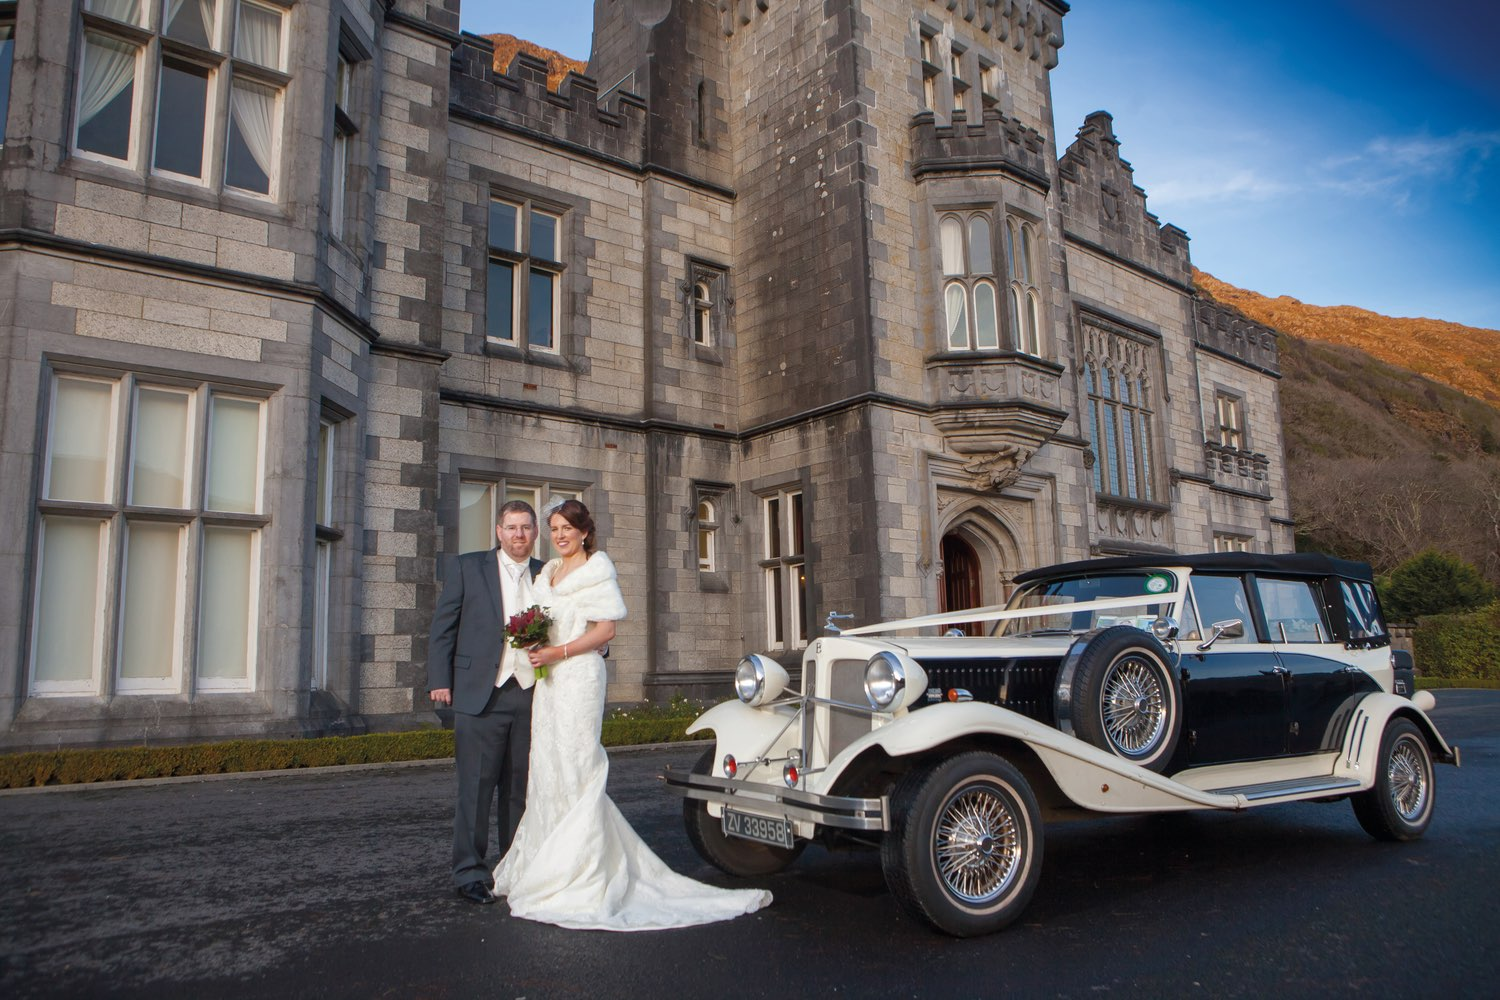 Ann-Marie Aspell and Tom O'Neill pose in front of Kylemore Abbey on their wedding day